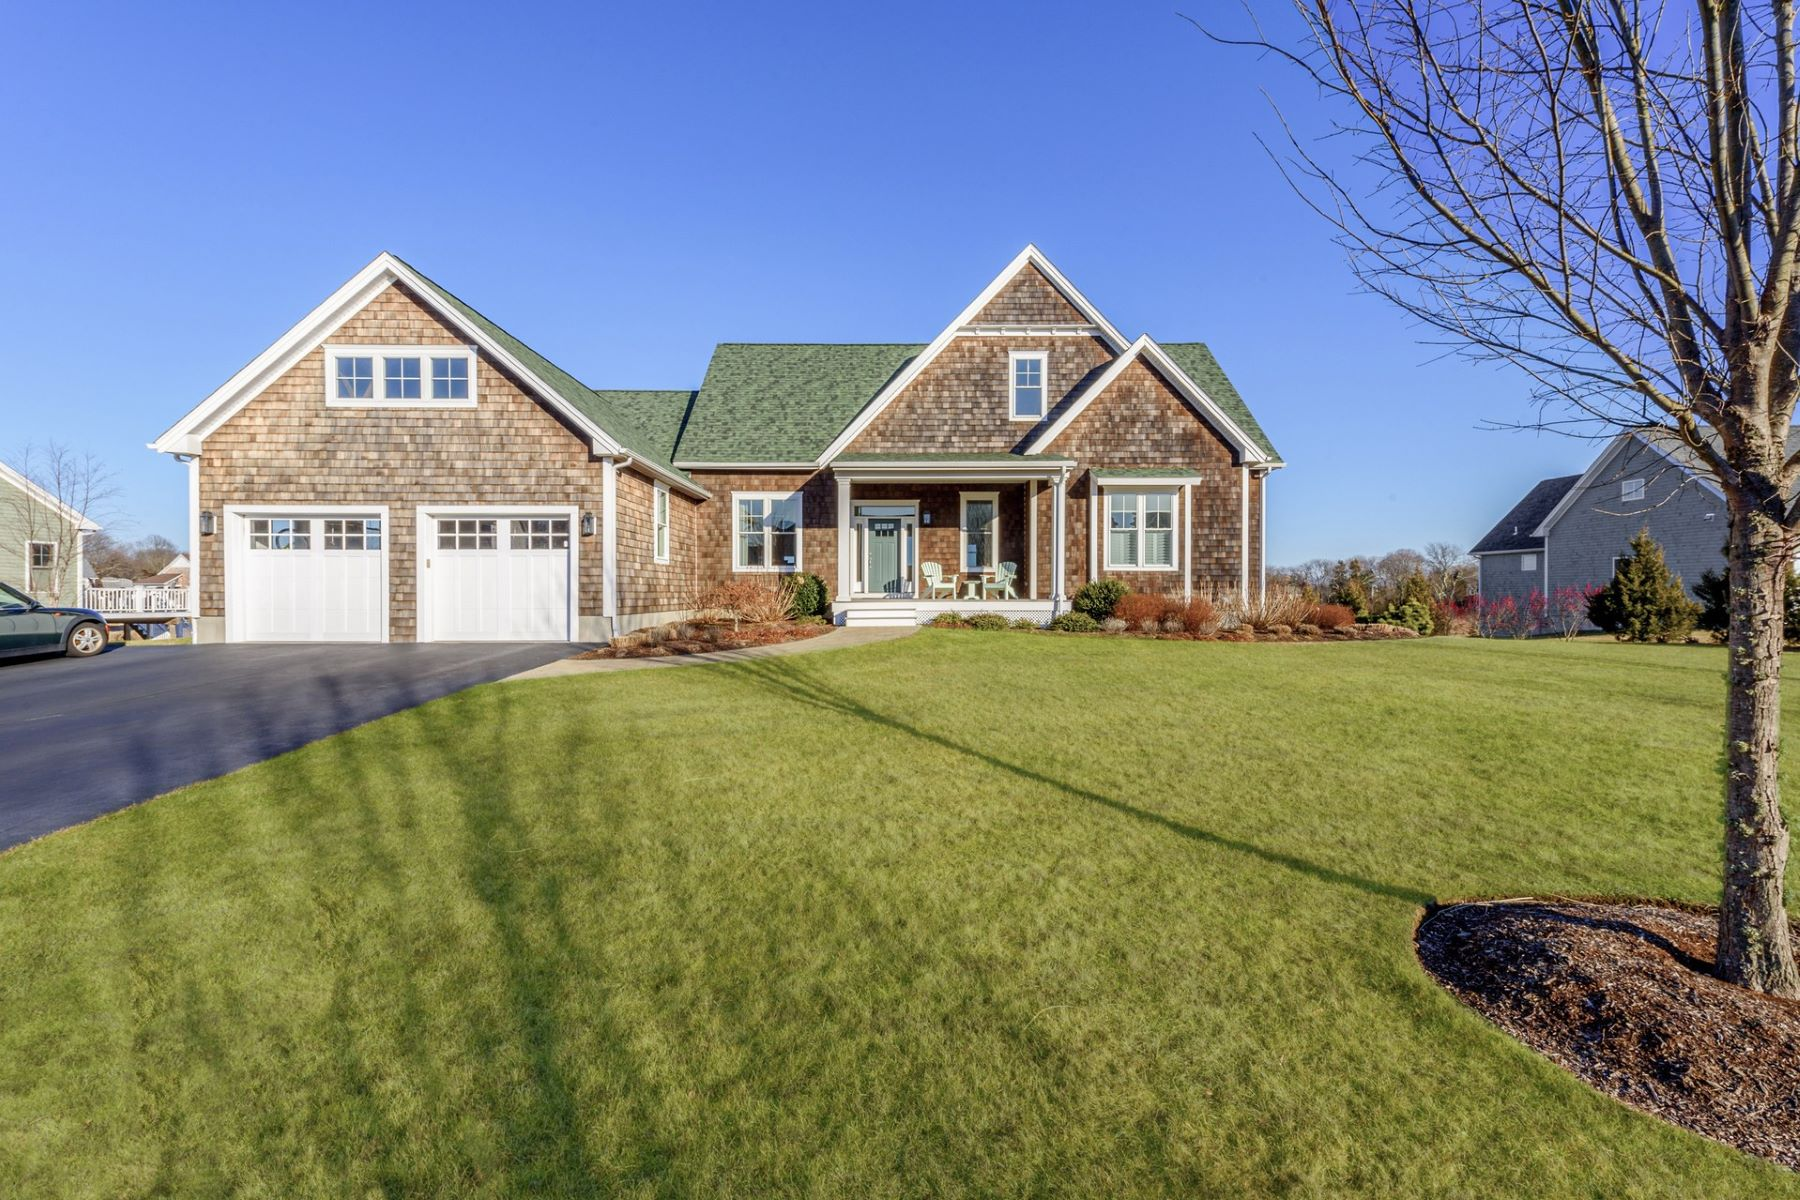 Single Family Homes for Sale at 71 East Matunuck Farm Drive South Kingstown, Rhode Island 02879 United States